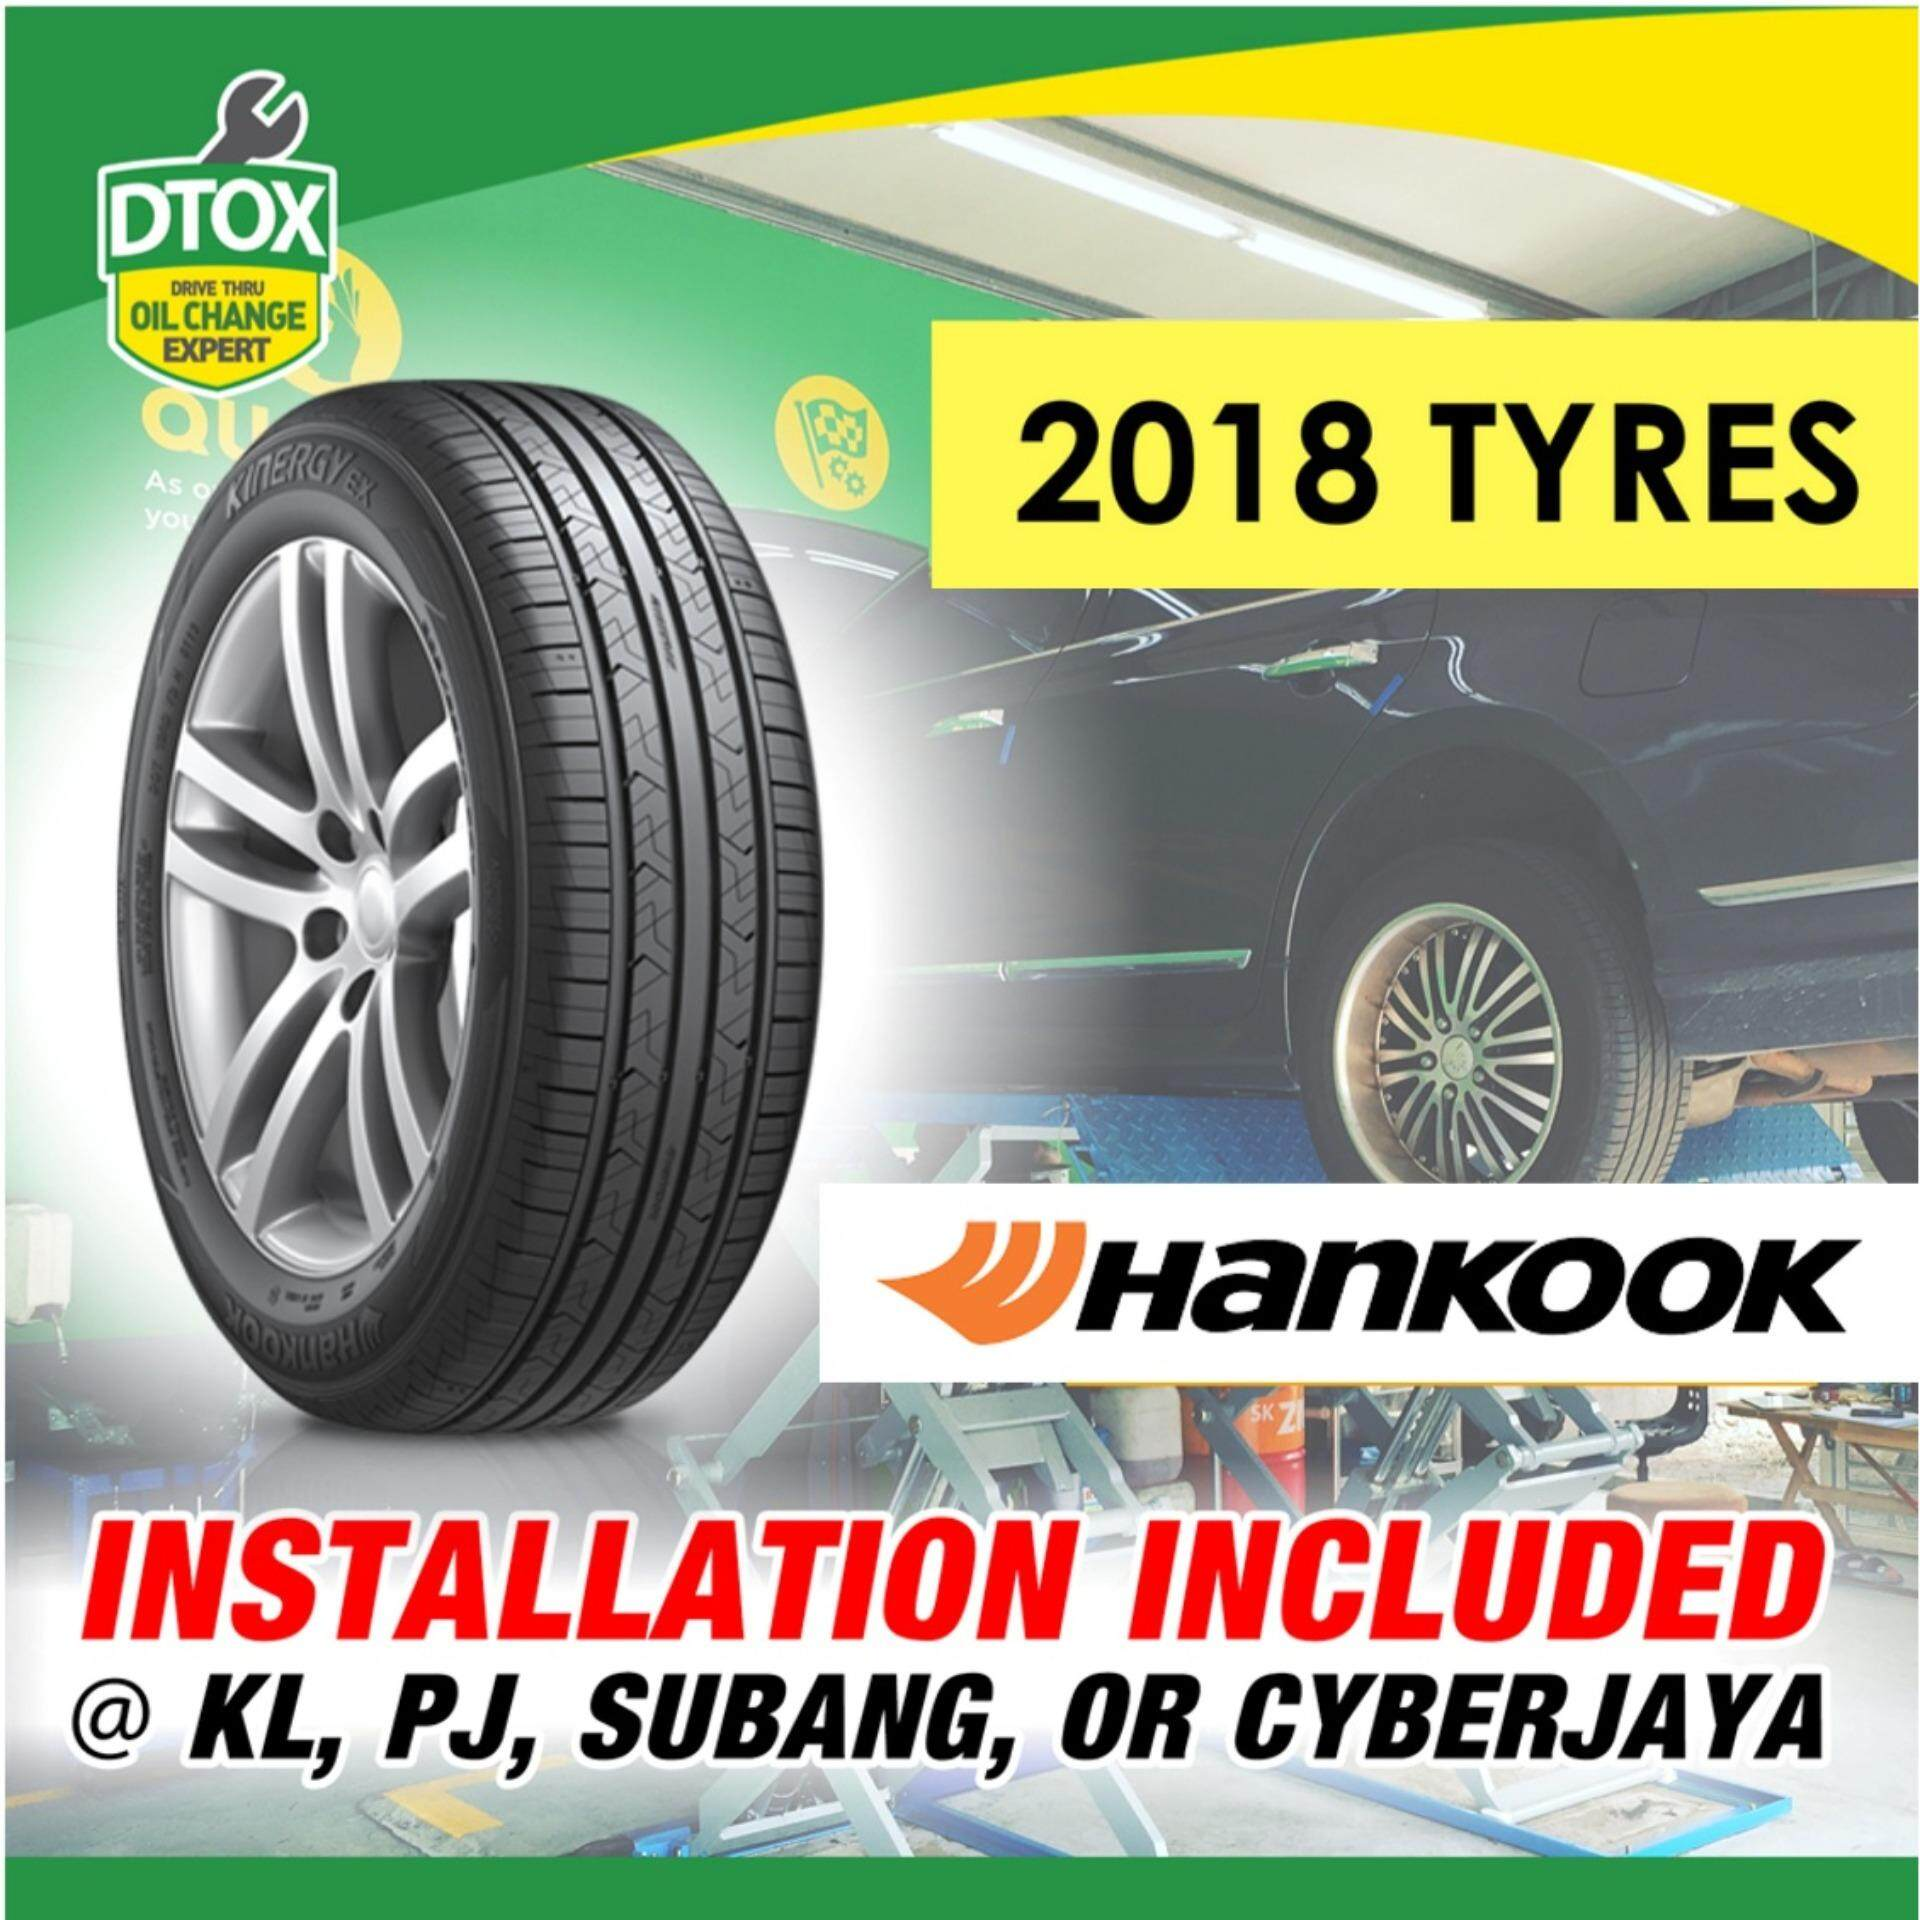 Hankook Kinergy Ex (h308) 165/60r14 Tyres (with Installation) By Dtox Car Service.